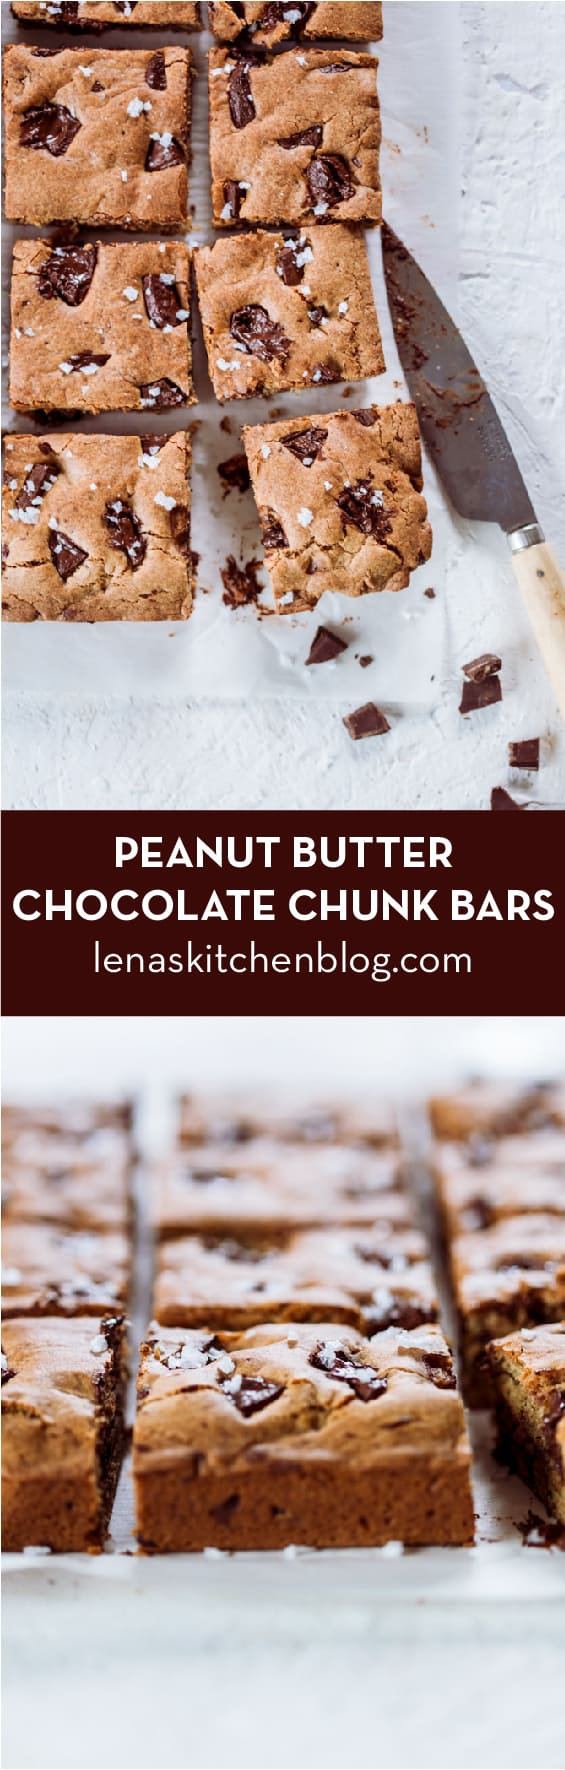 Peanut Butter Chocolate Chunk Bars Baking Challenge by lenaskitchenblog.com